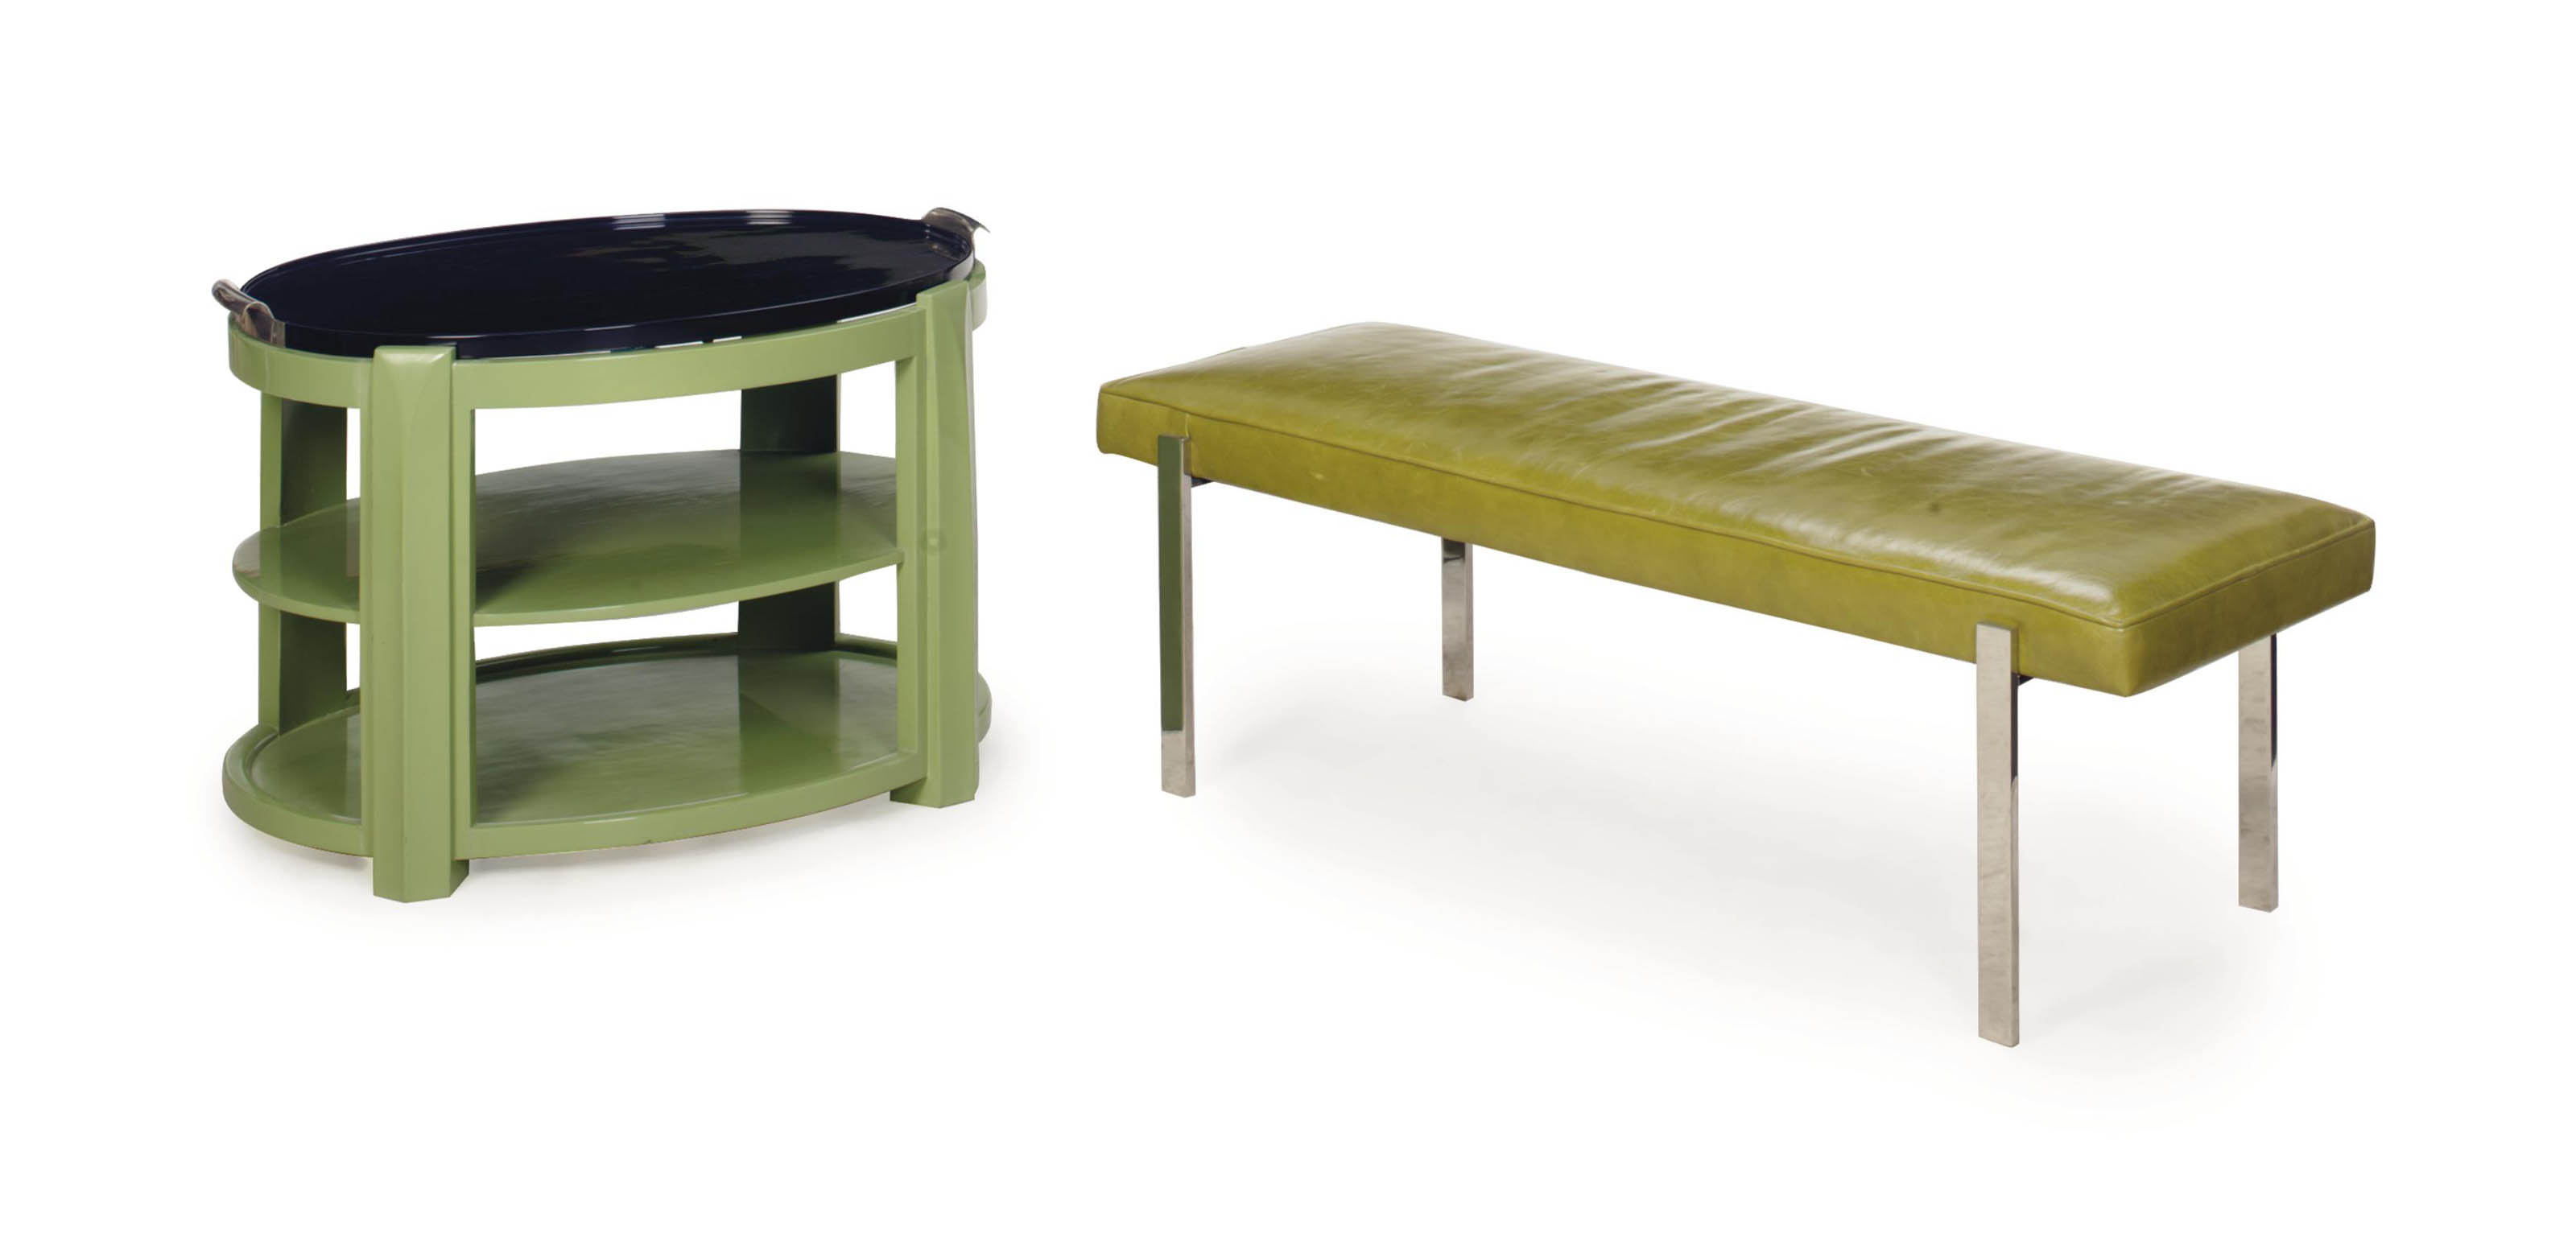 A MINT GREEN AND BLACK-PAINTED TRAY-TOP TWO-TIER SIDE TABLE,